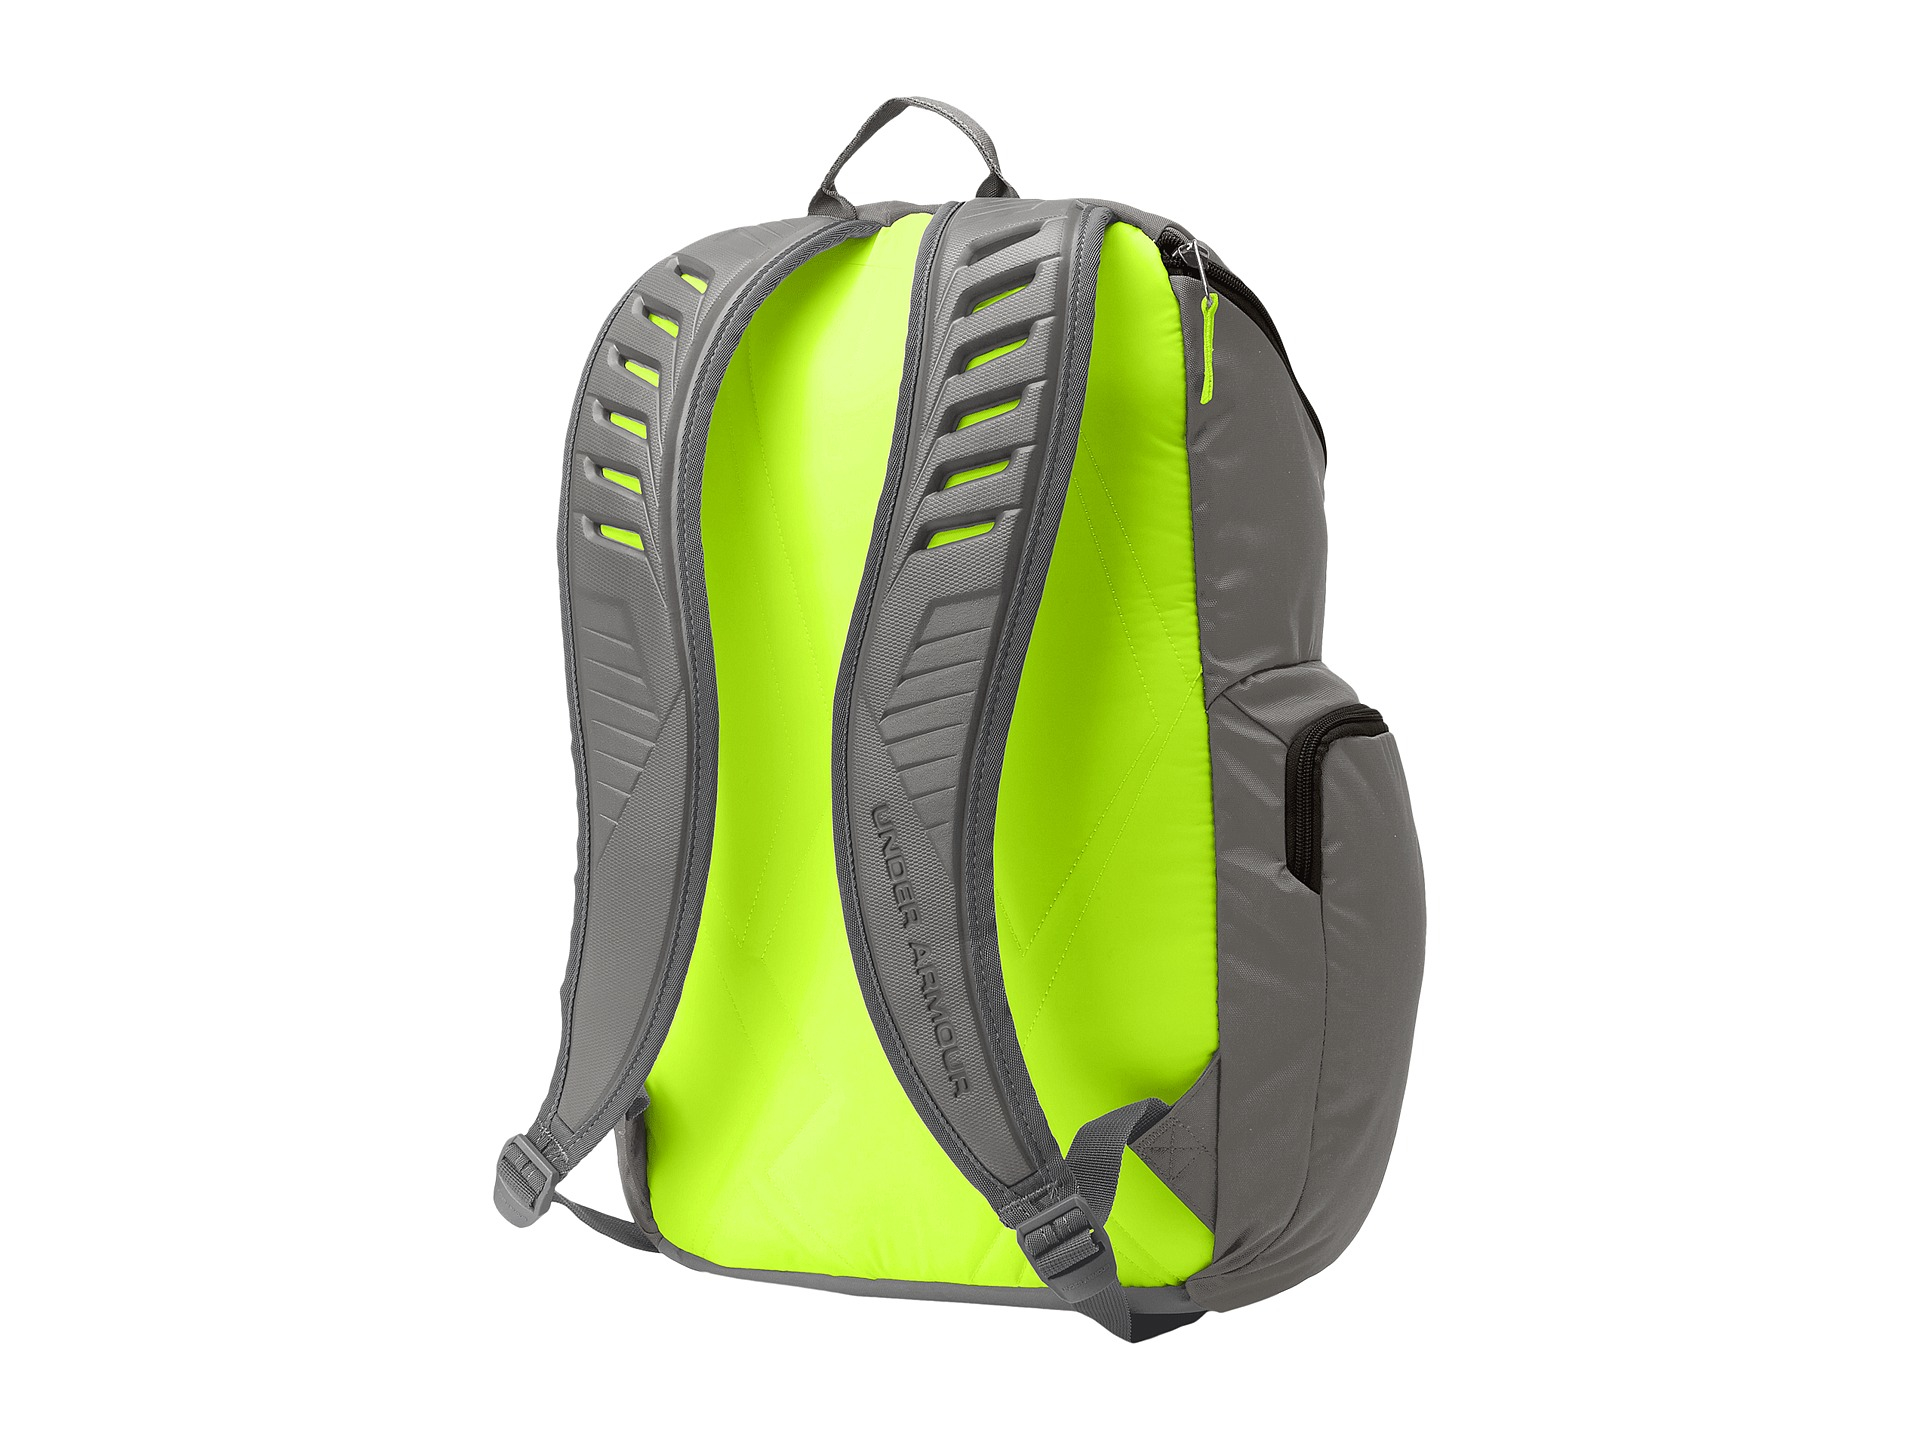 816e4b0a4a00 Lyst - Under Armour Ua Undeniable Backpack Ii in Green